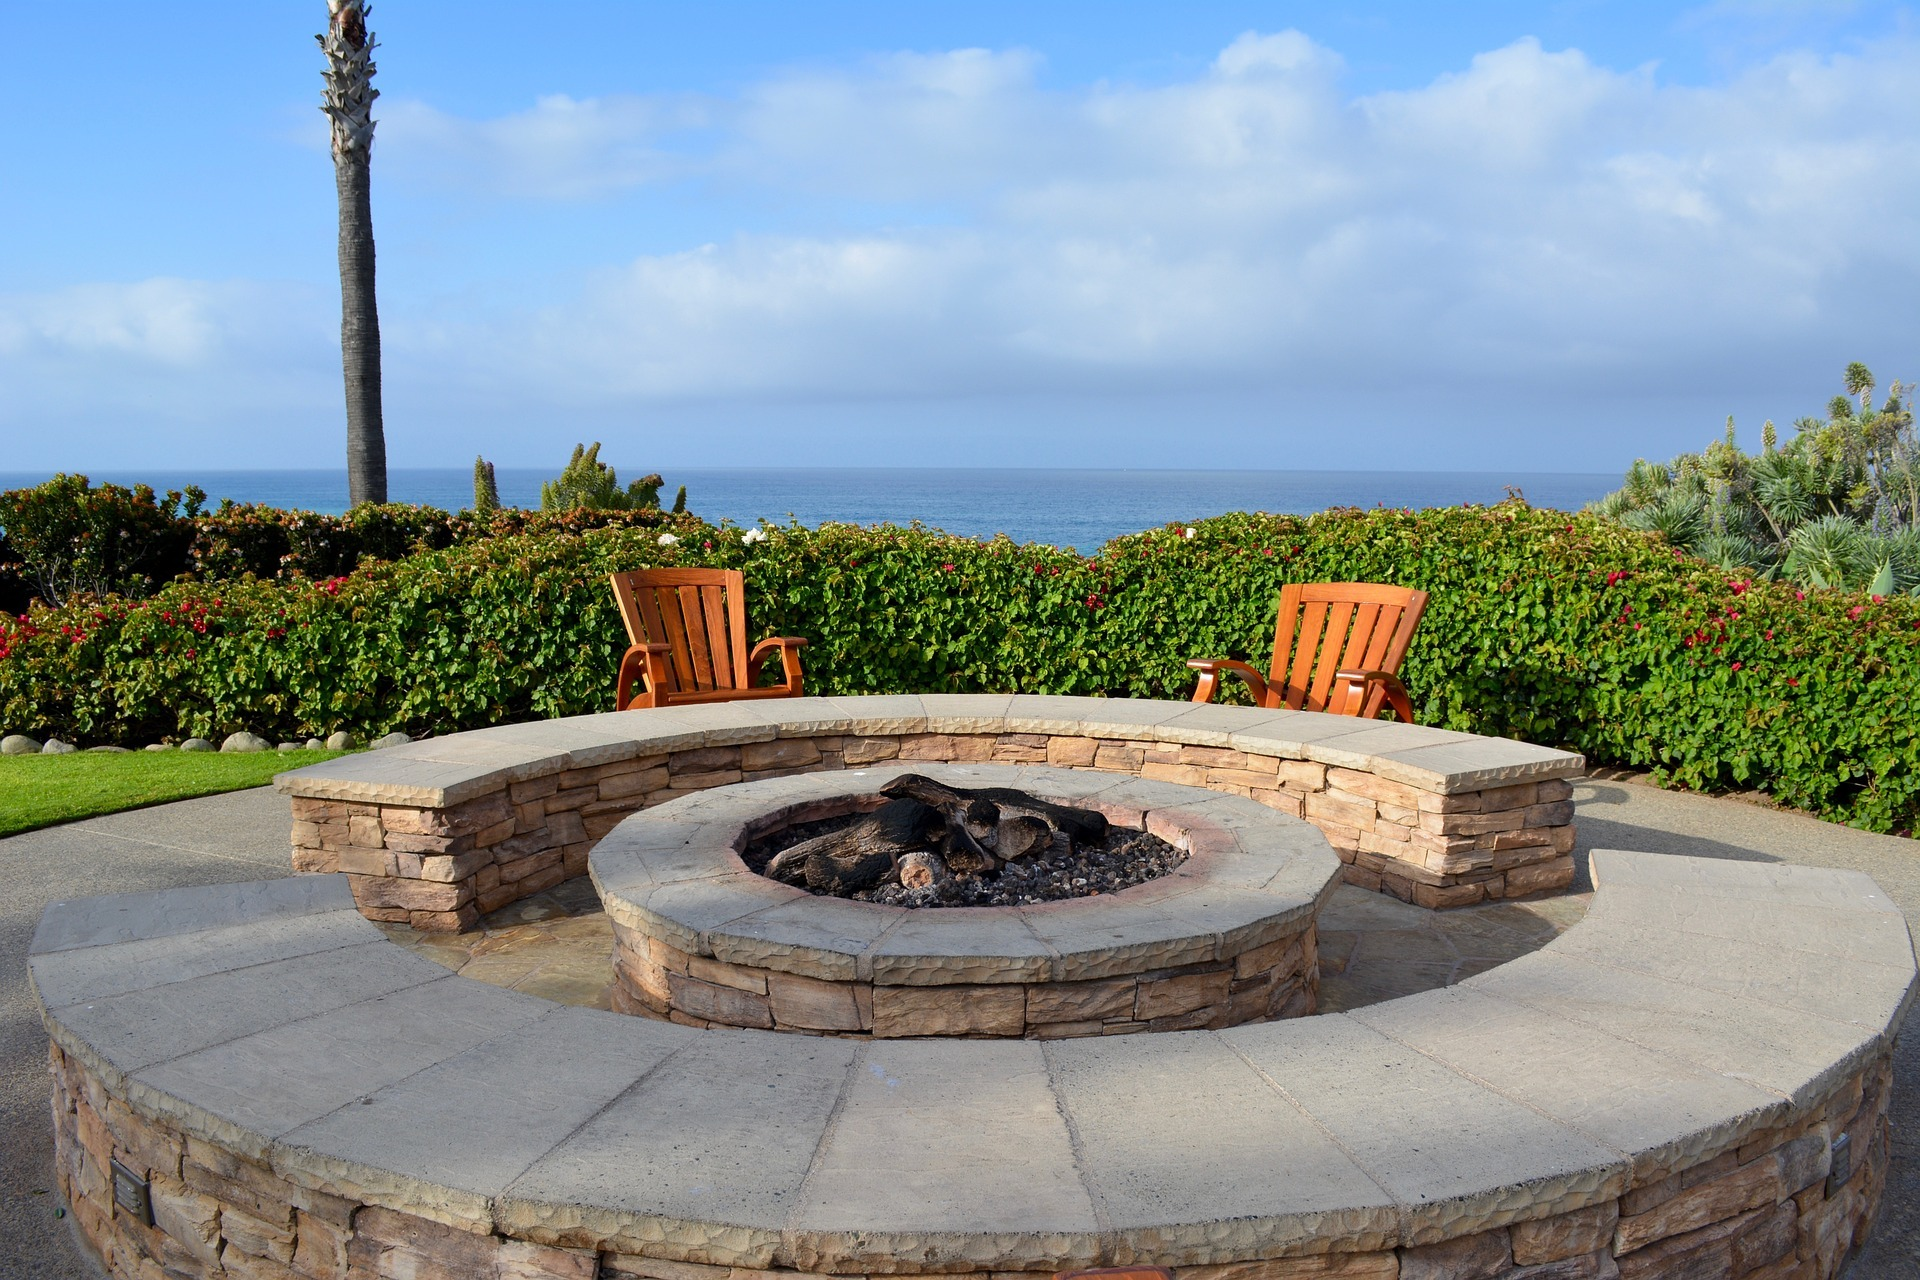 How To Build A Stone Fire Pit Best Fire Pits Reviewed Compared